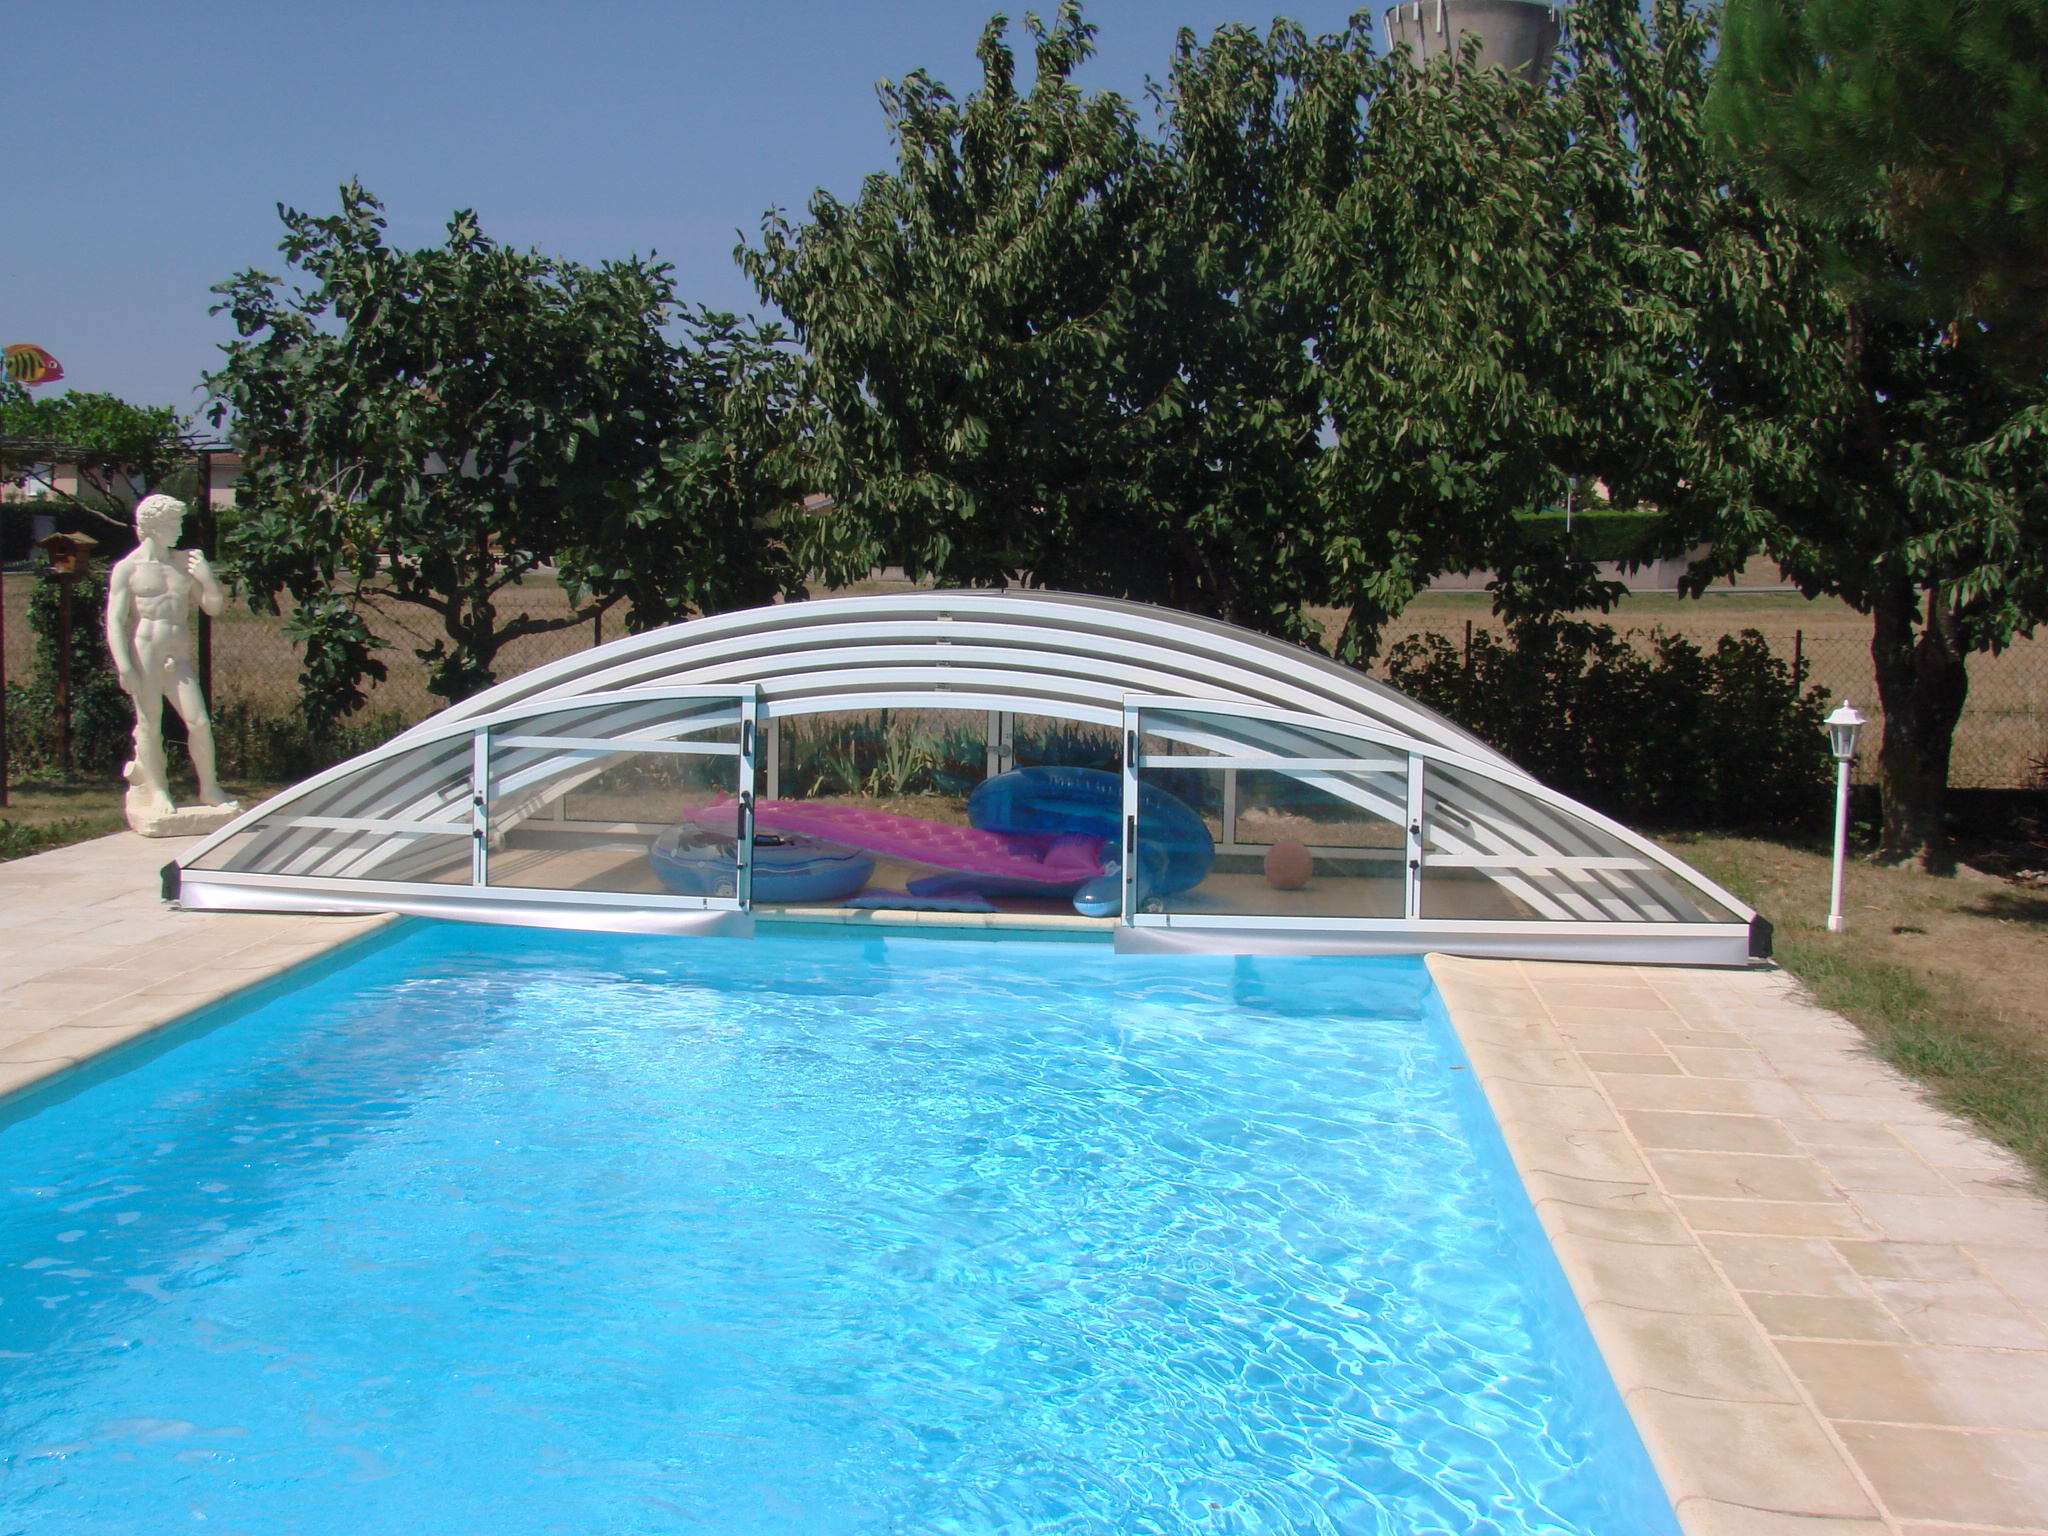 Angebot swimming pools manufacturer in europe for Plexiglass pool enclosure